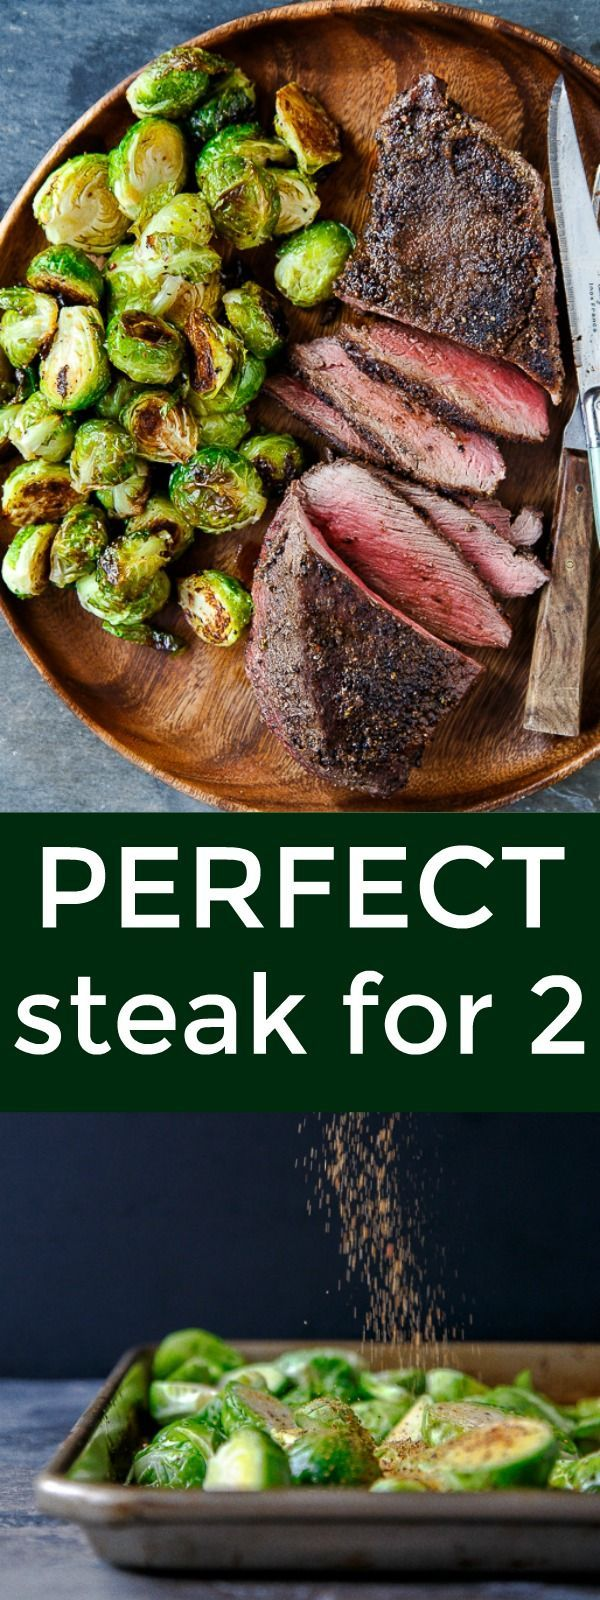 How to cook the perfect steak for 2 people! Steak night at home for date night! Valentine's Day perfects steaks for two. Romantic meals for two at home.